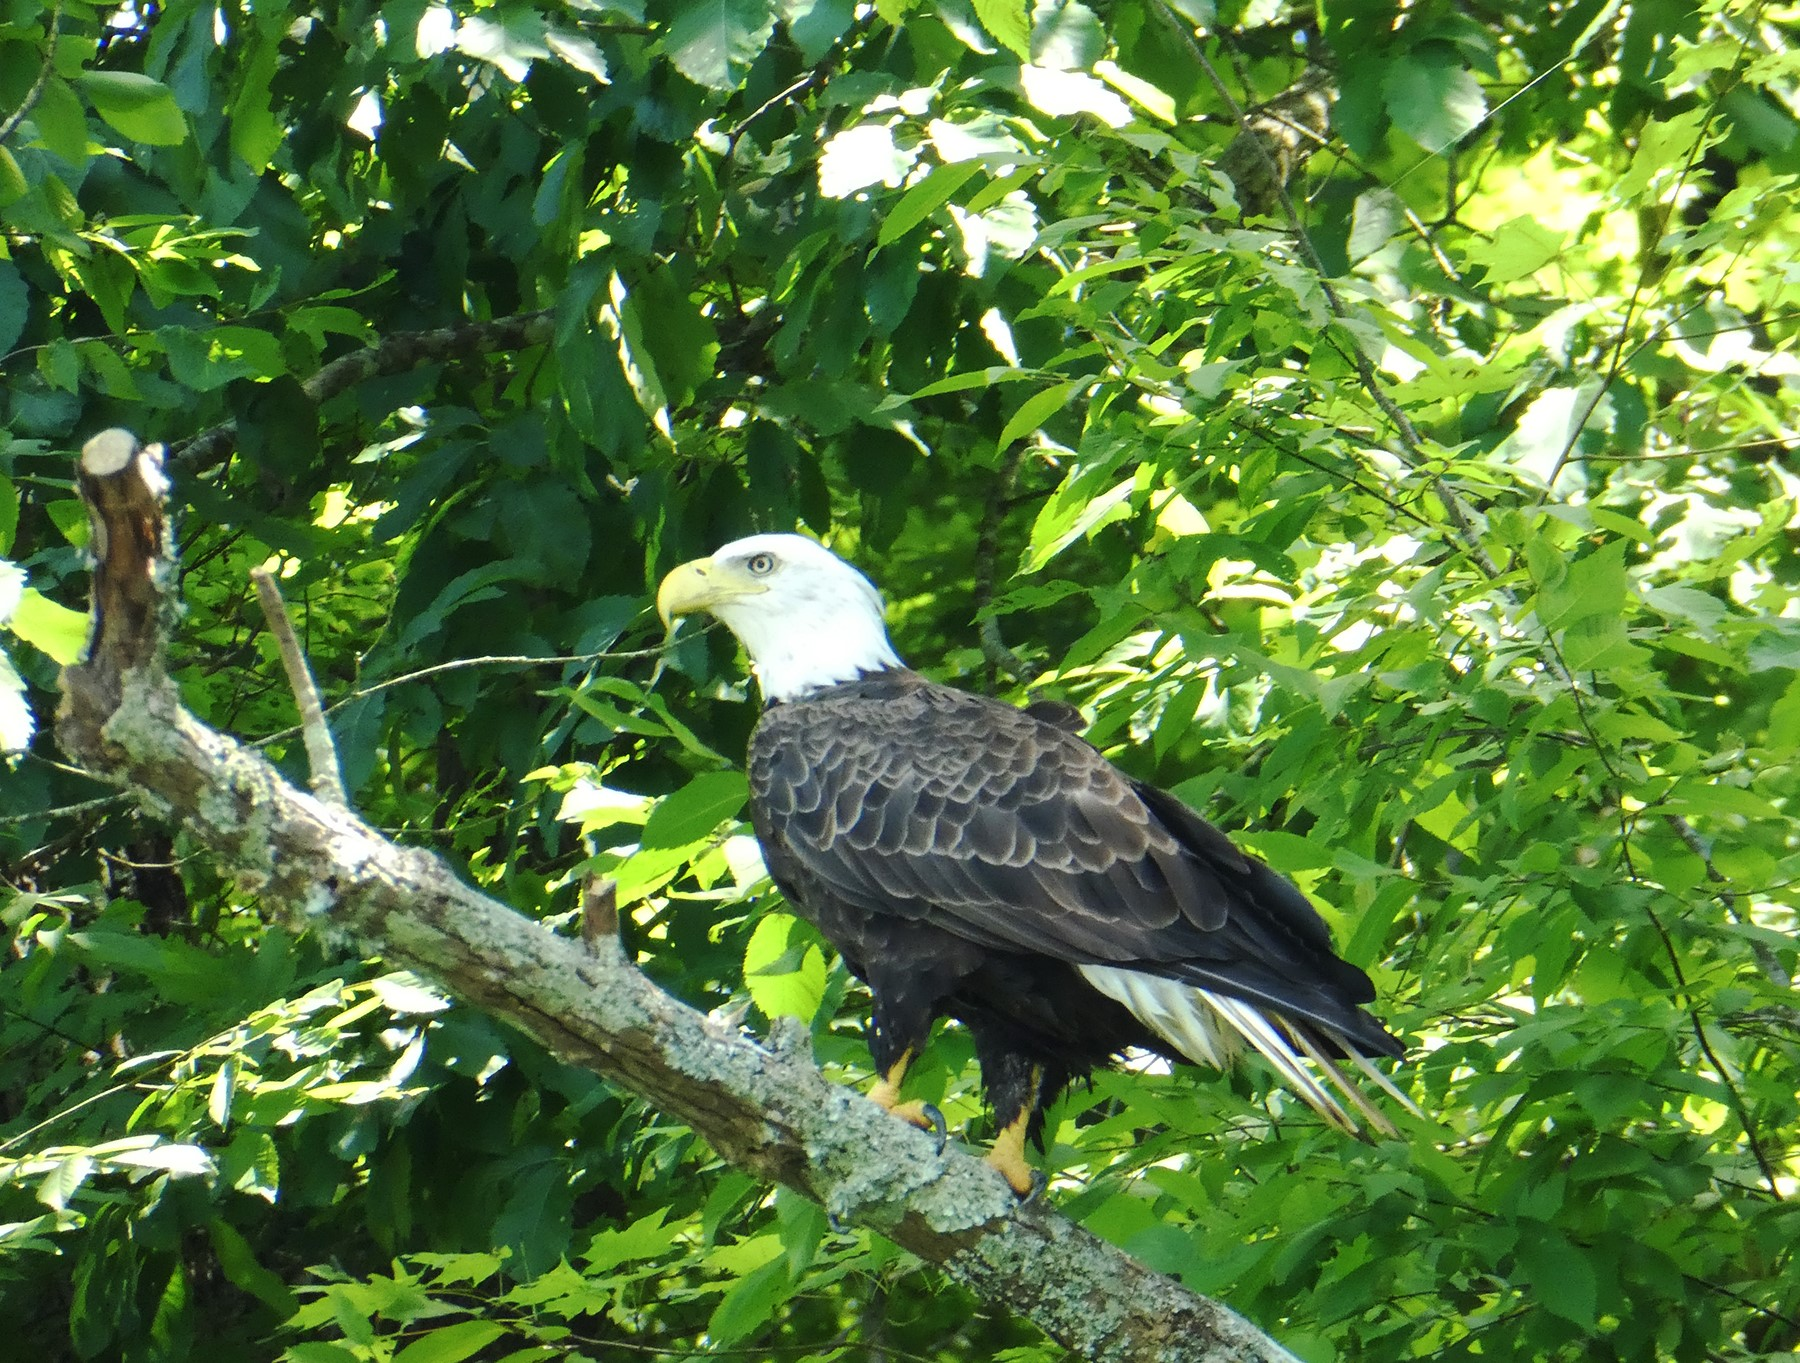 Bald eagle in tree near my home